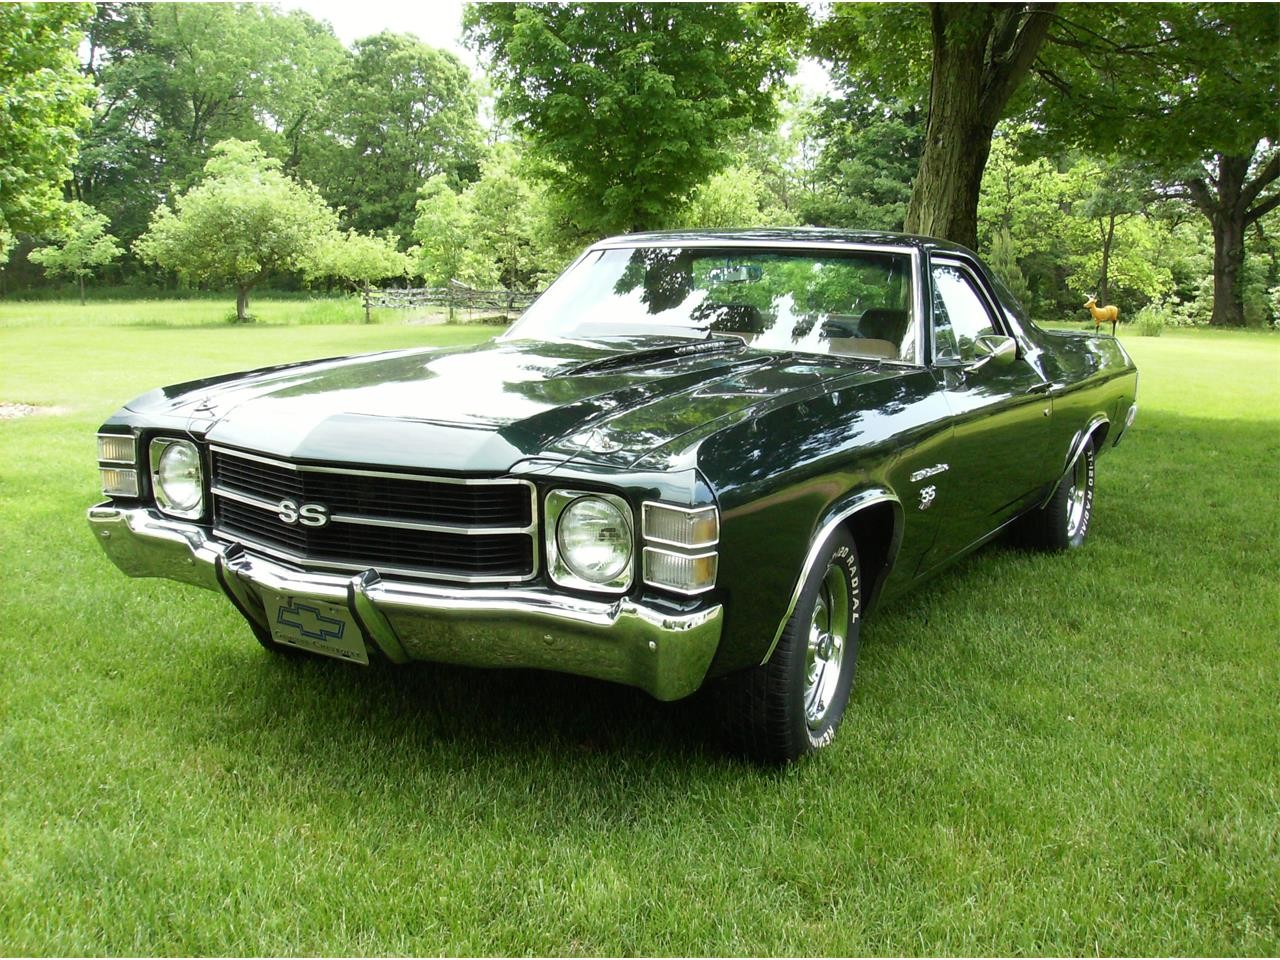 1971 Chevrolet El Camino SS (CC-989049) for sale in Paw Paw, Michigan